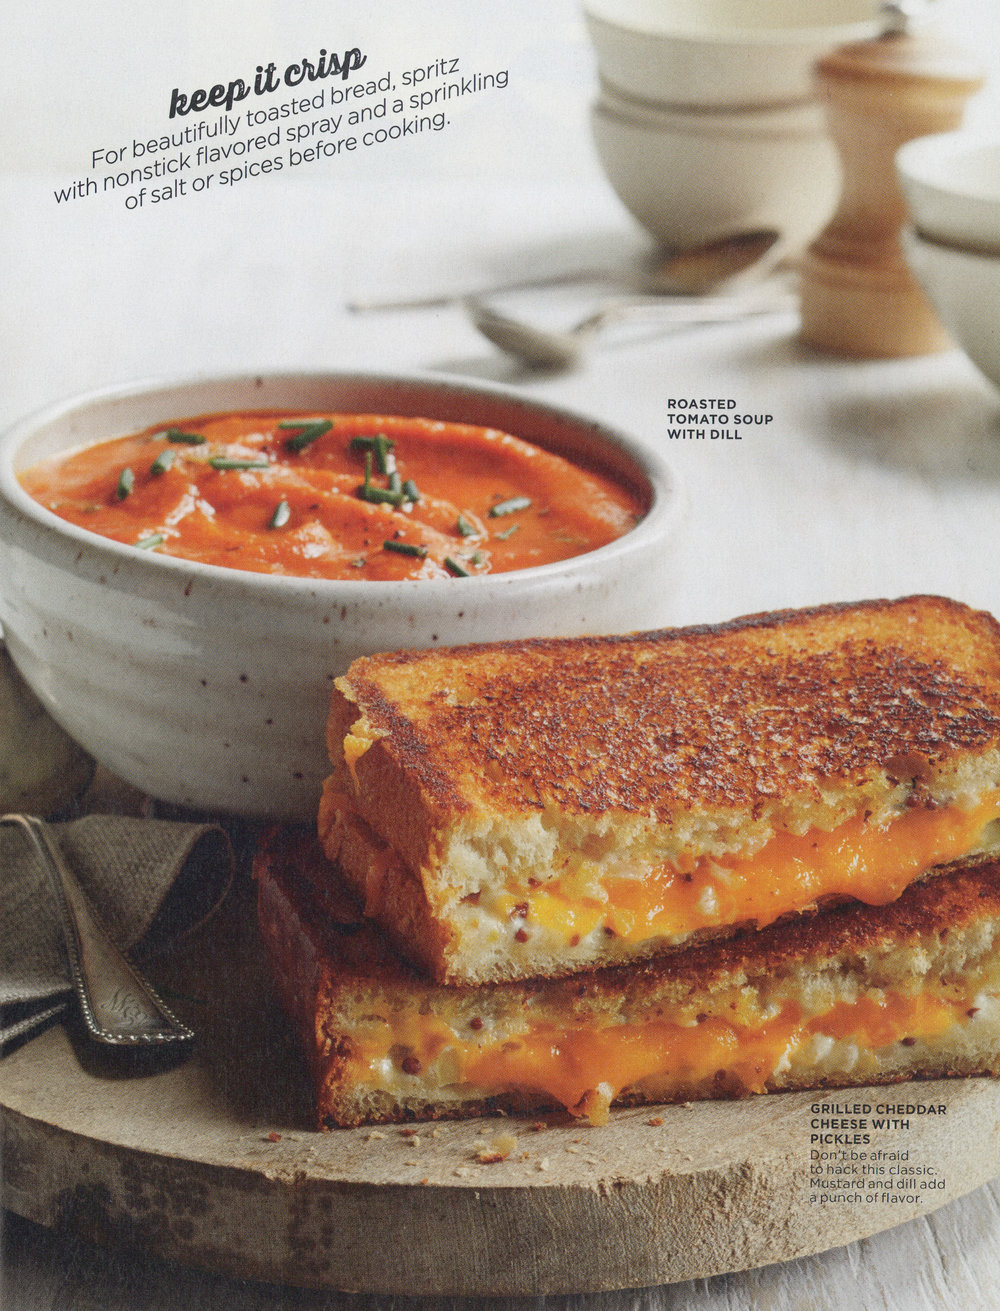 roasted tomato soup with pub cheddar grilled cheese picture.jpg